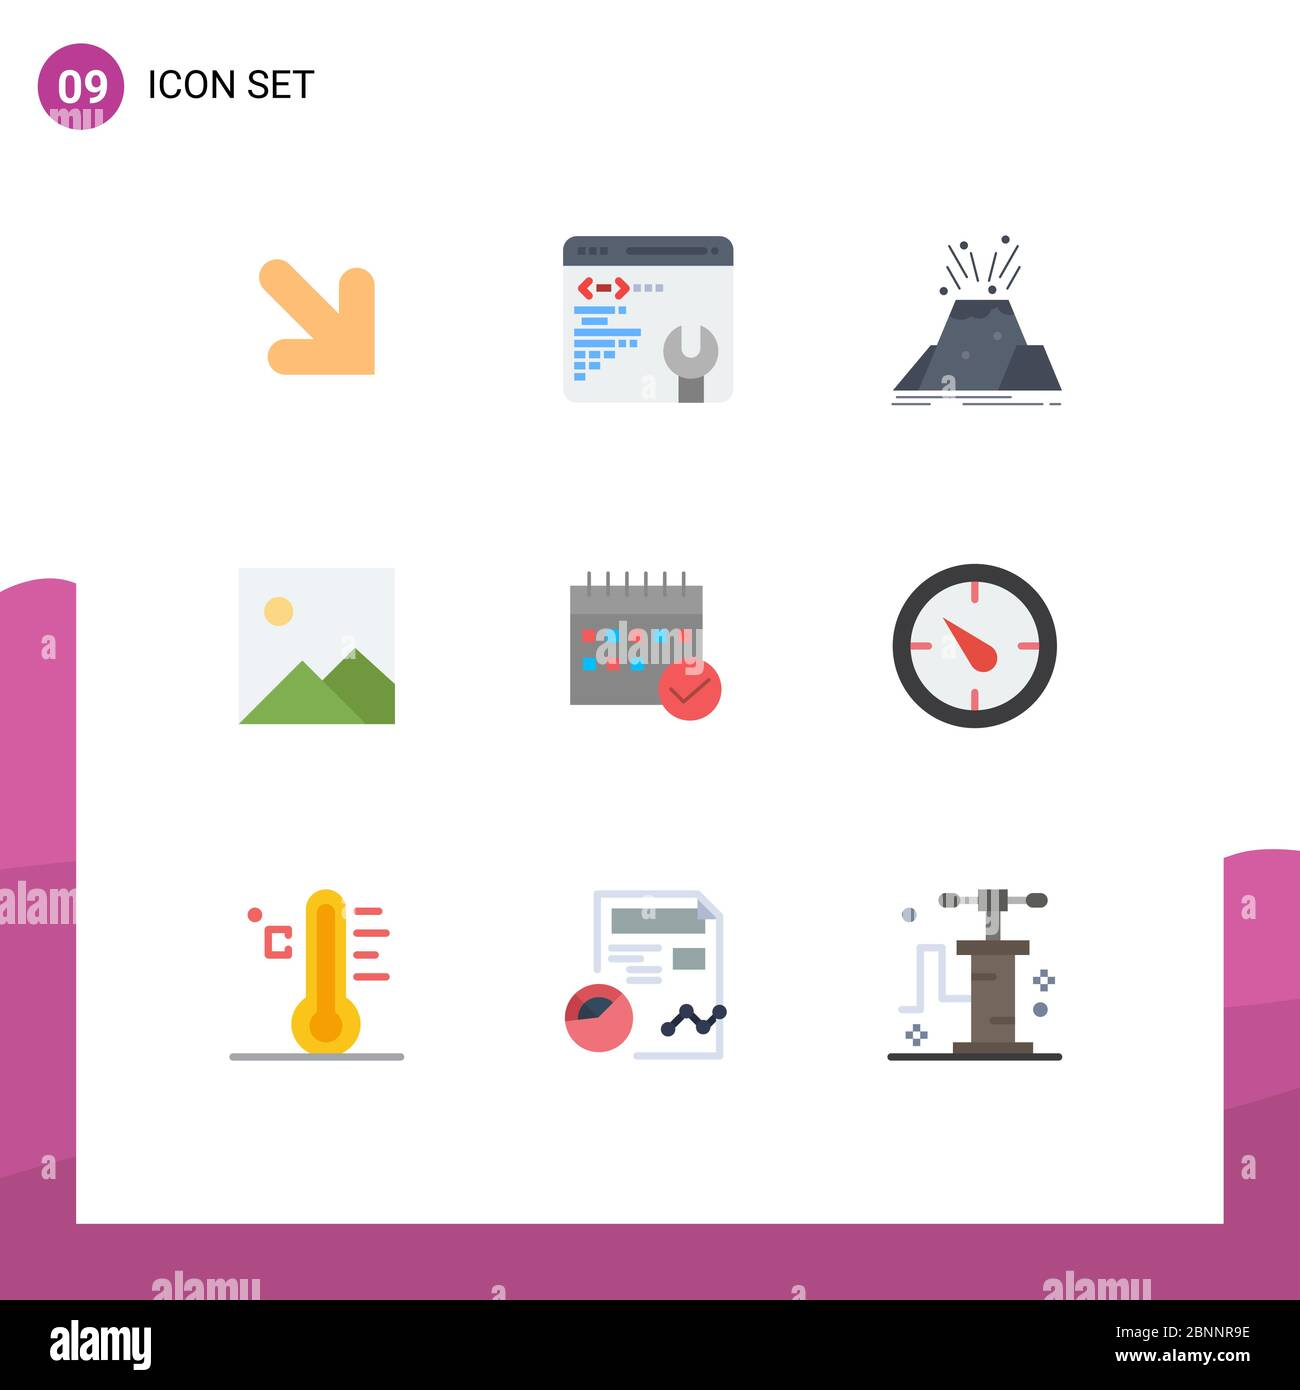 9 Creative Icons Modern Signs and Symbols of calendar, approved, volcano, schedule, image Editable Vector Design Elements Stock Vector